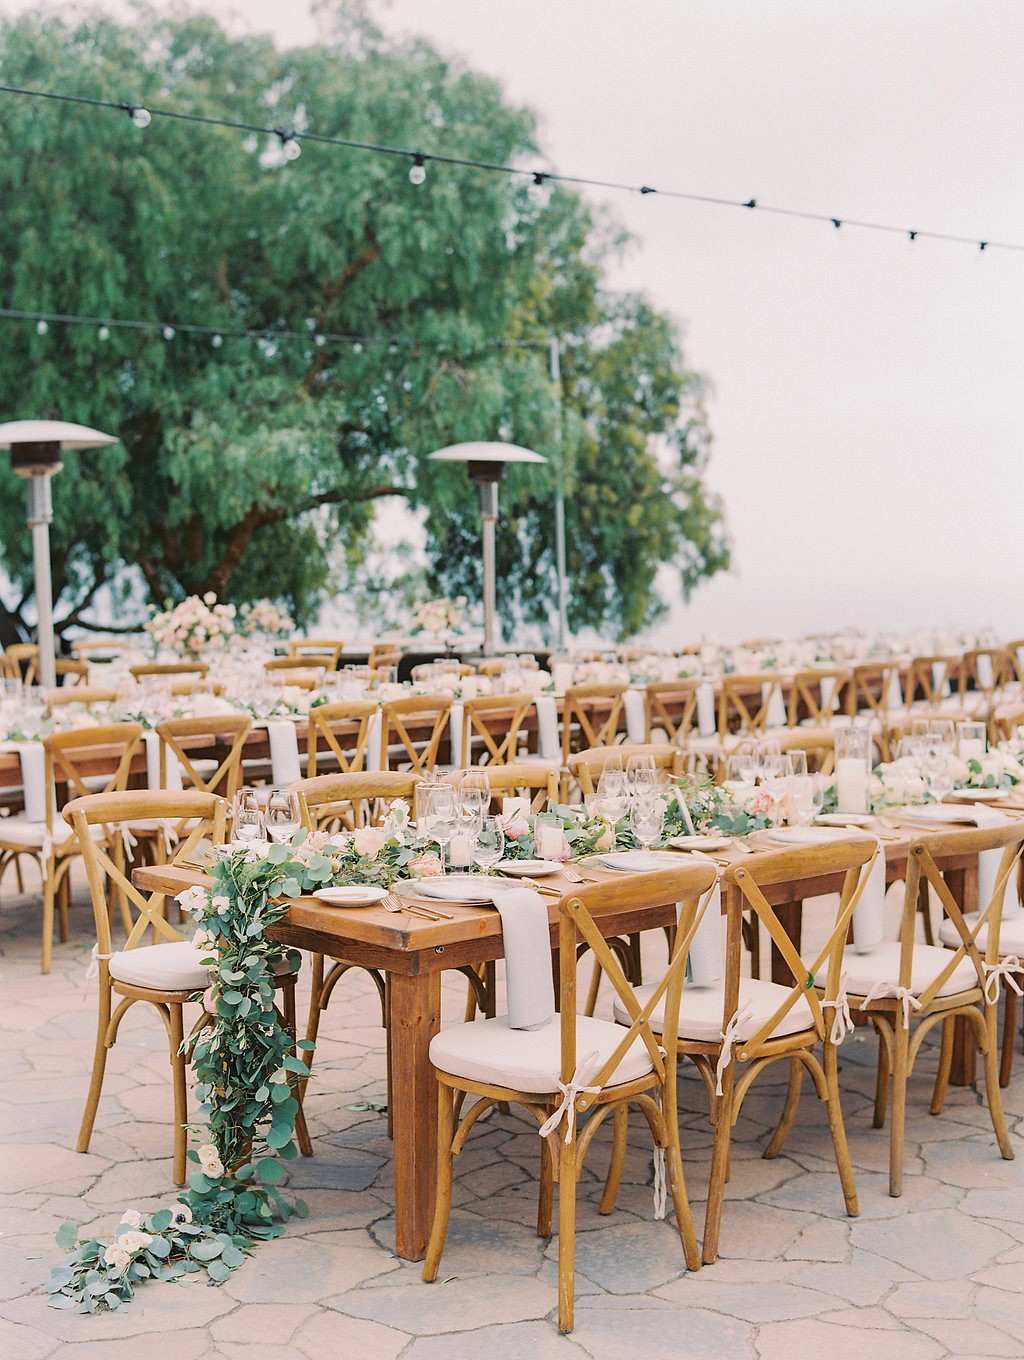 Outdoor wedding with floral arch and blush details